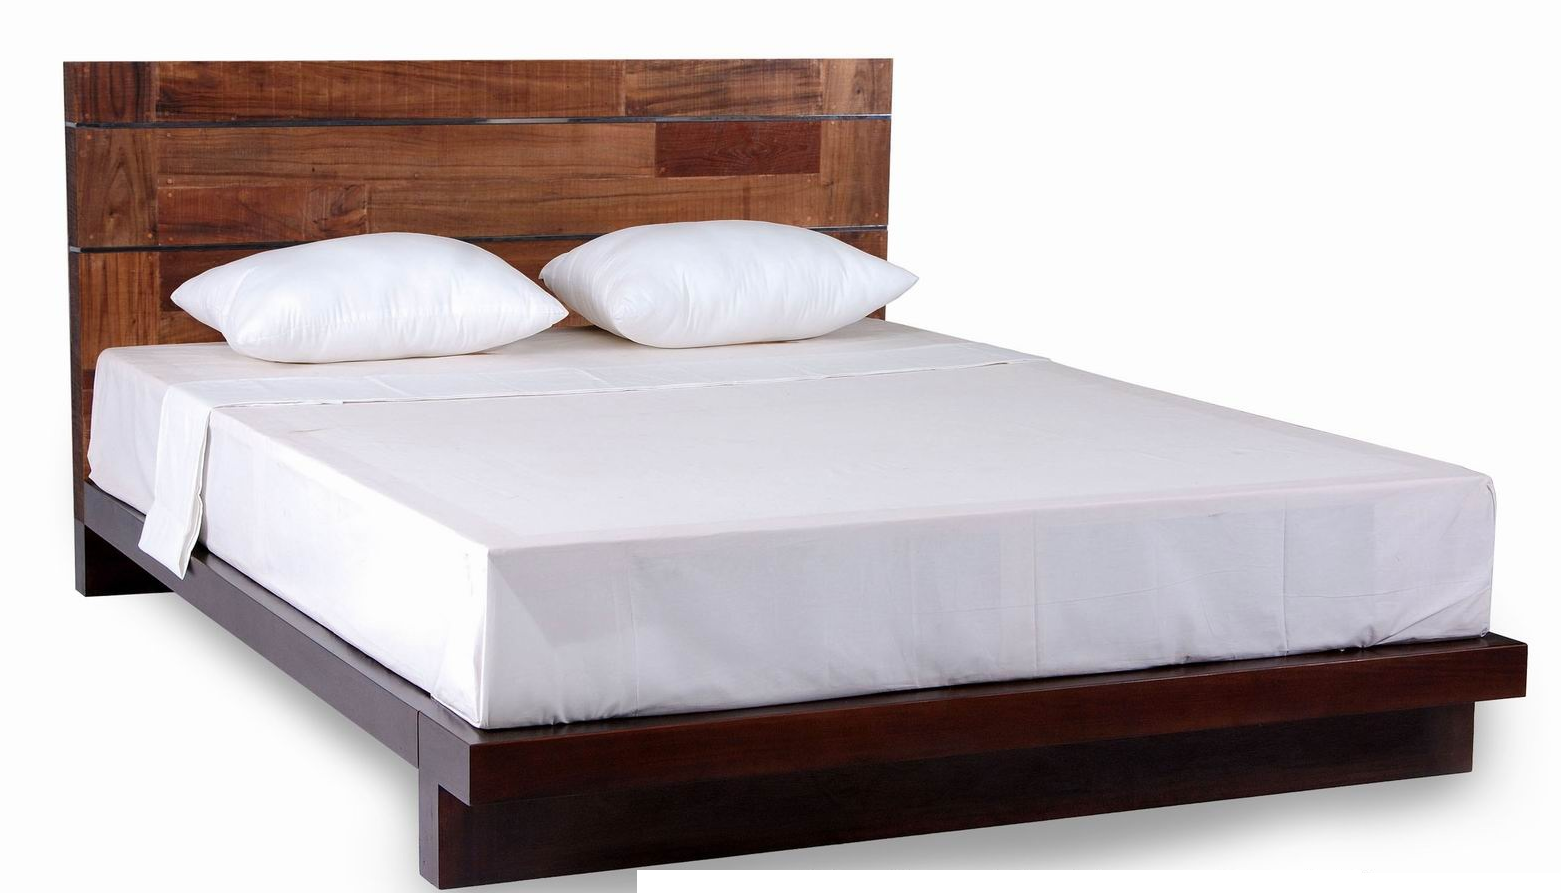 PNG HD Of A Bed